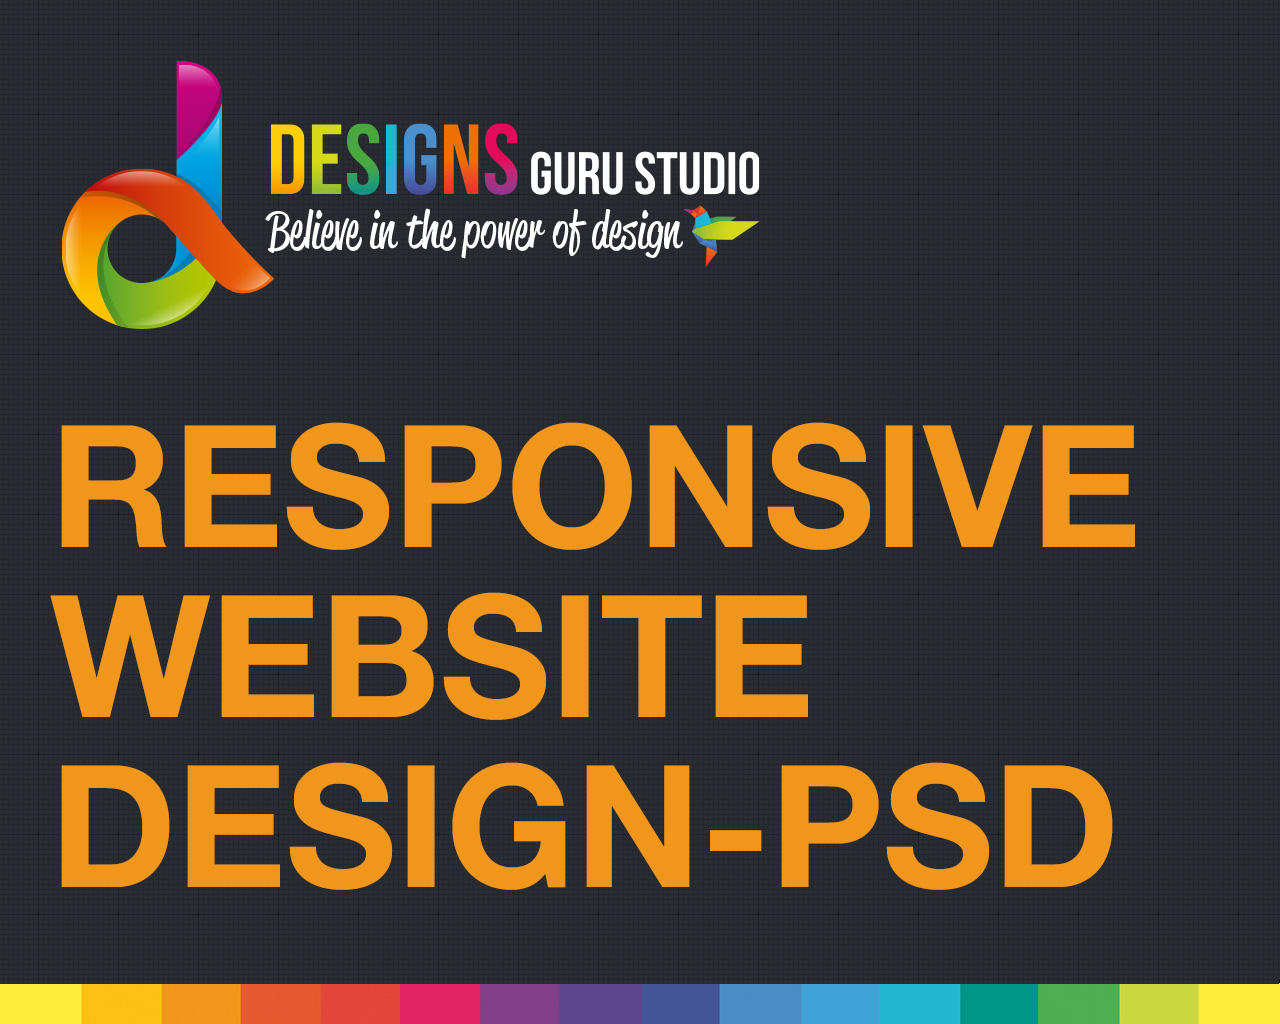 Responsive Website Design (PSD) by designsgurustudio - 93967